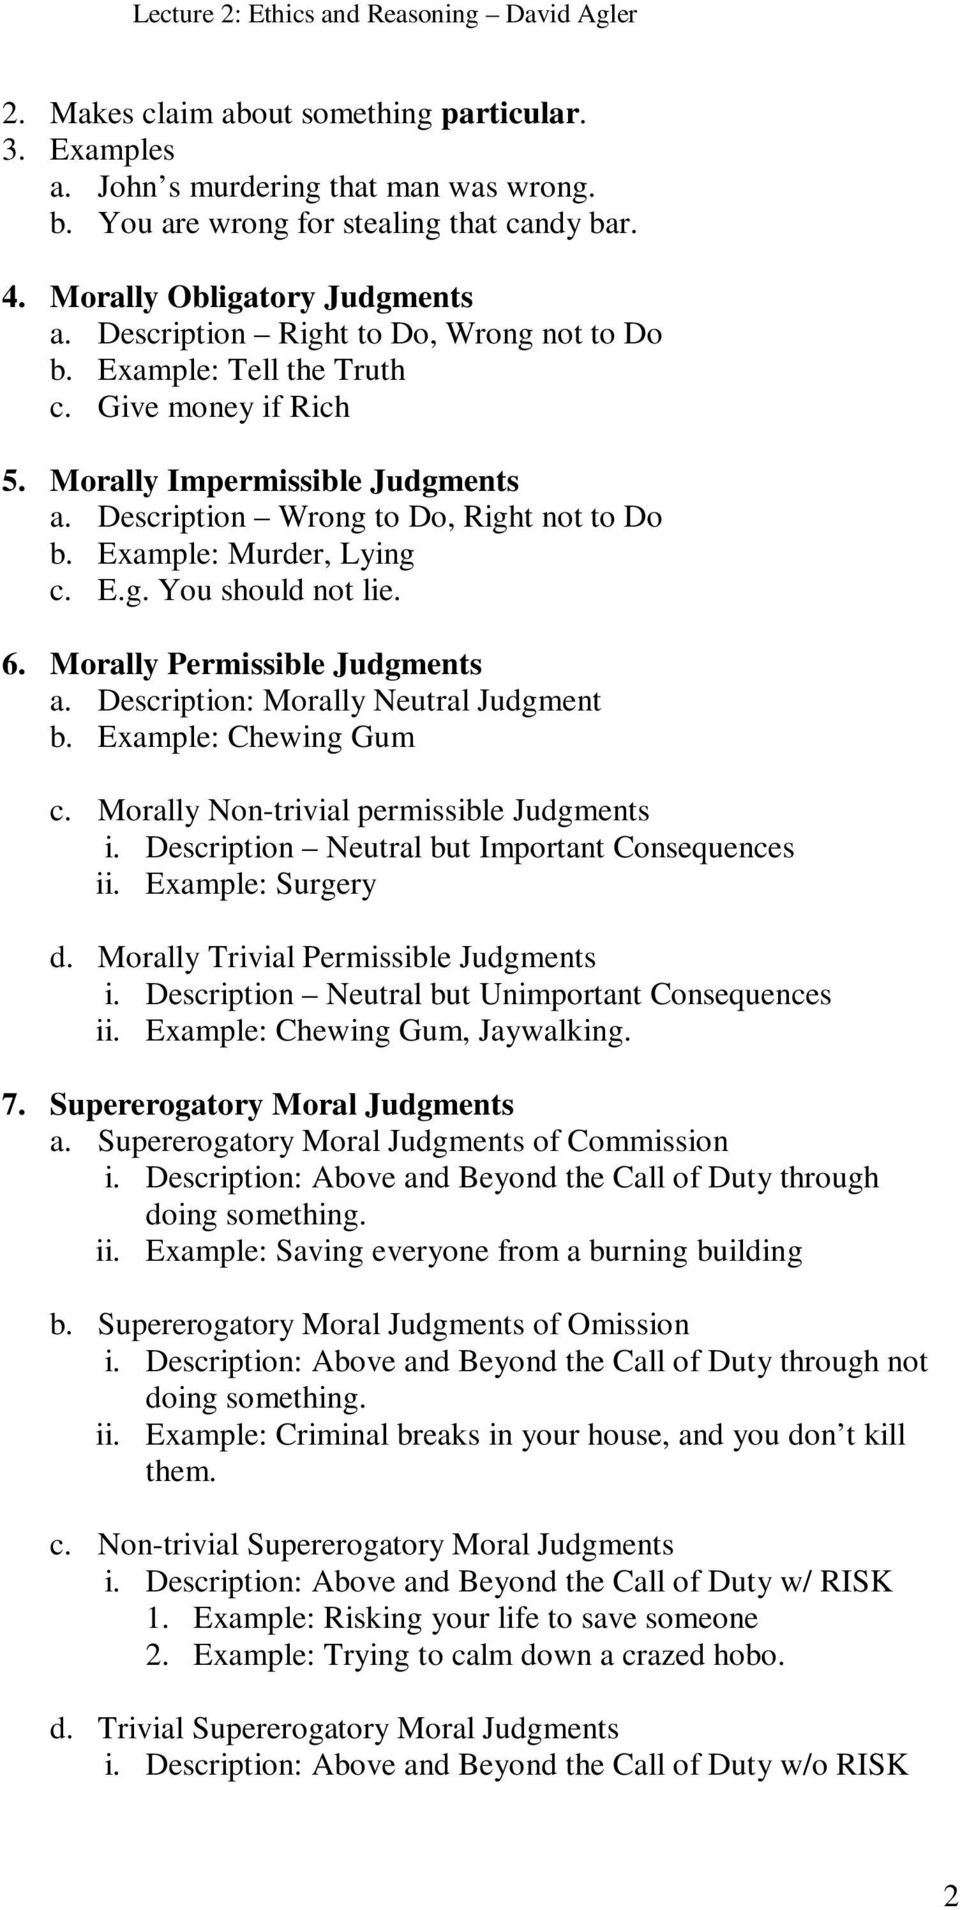 6. Morally Permissible Judgments a. Description: Morally Neutral Judgment b. Example: Chewing Gum c. Morally Non-trivial permissible Judgments i. Description Neutral but Important Consequences ii.